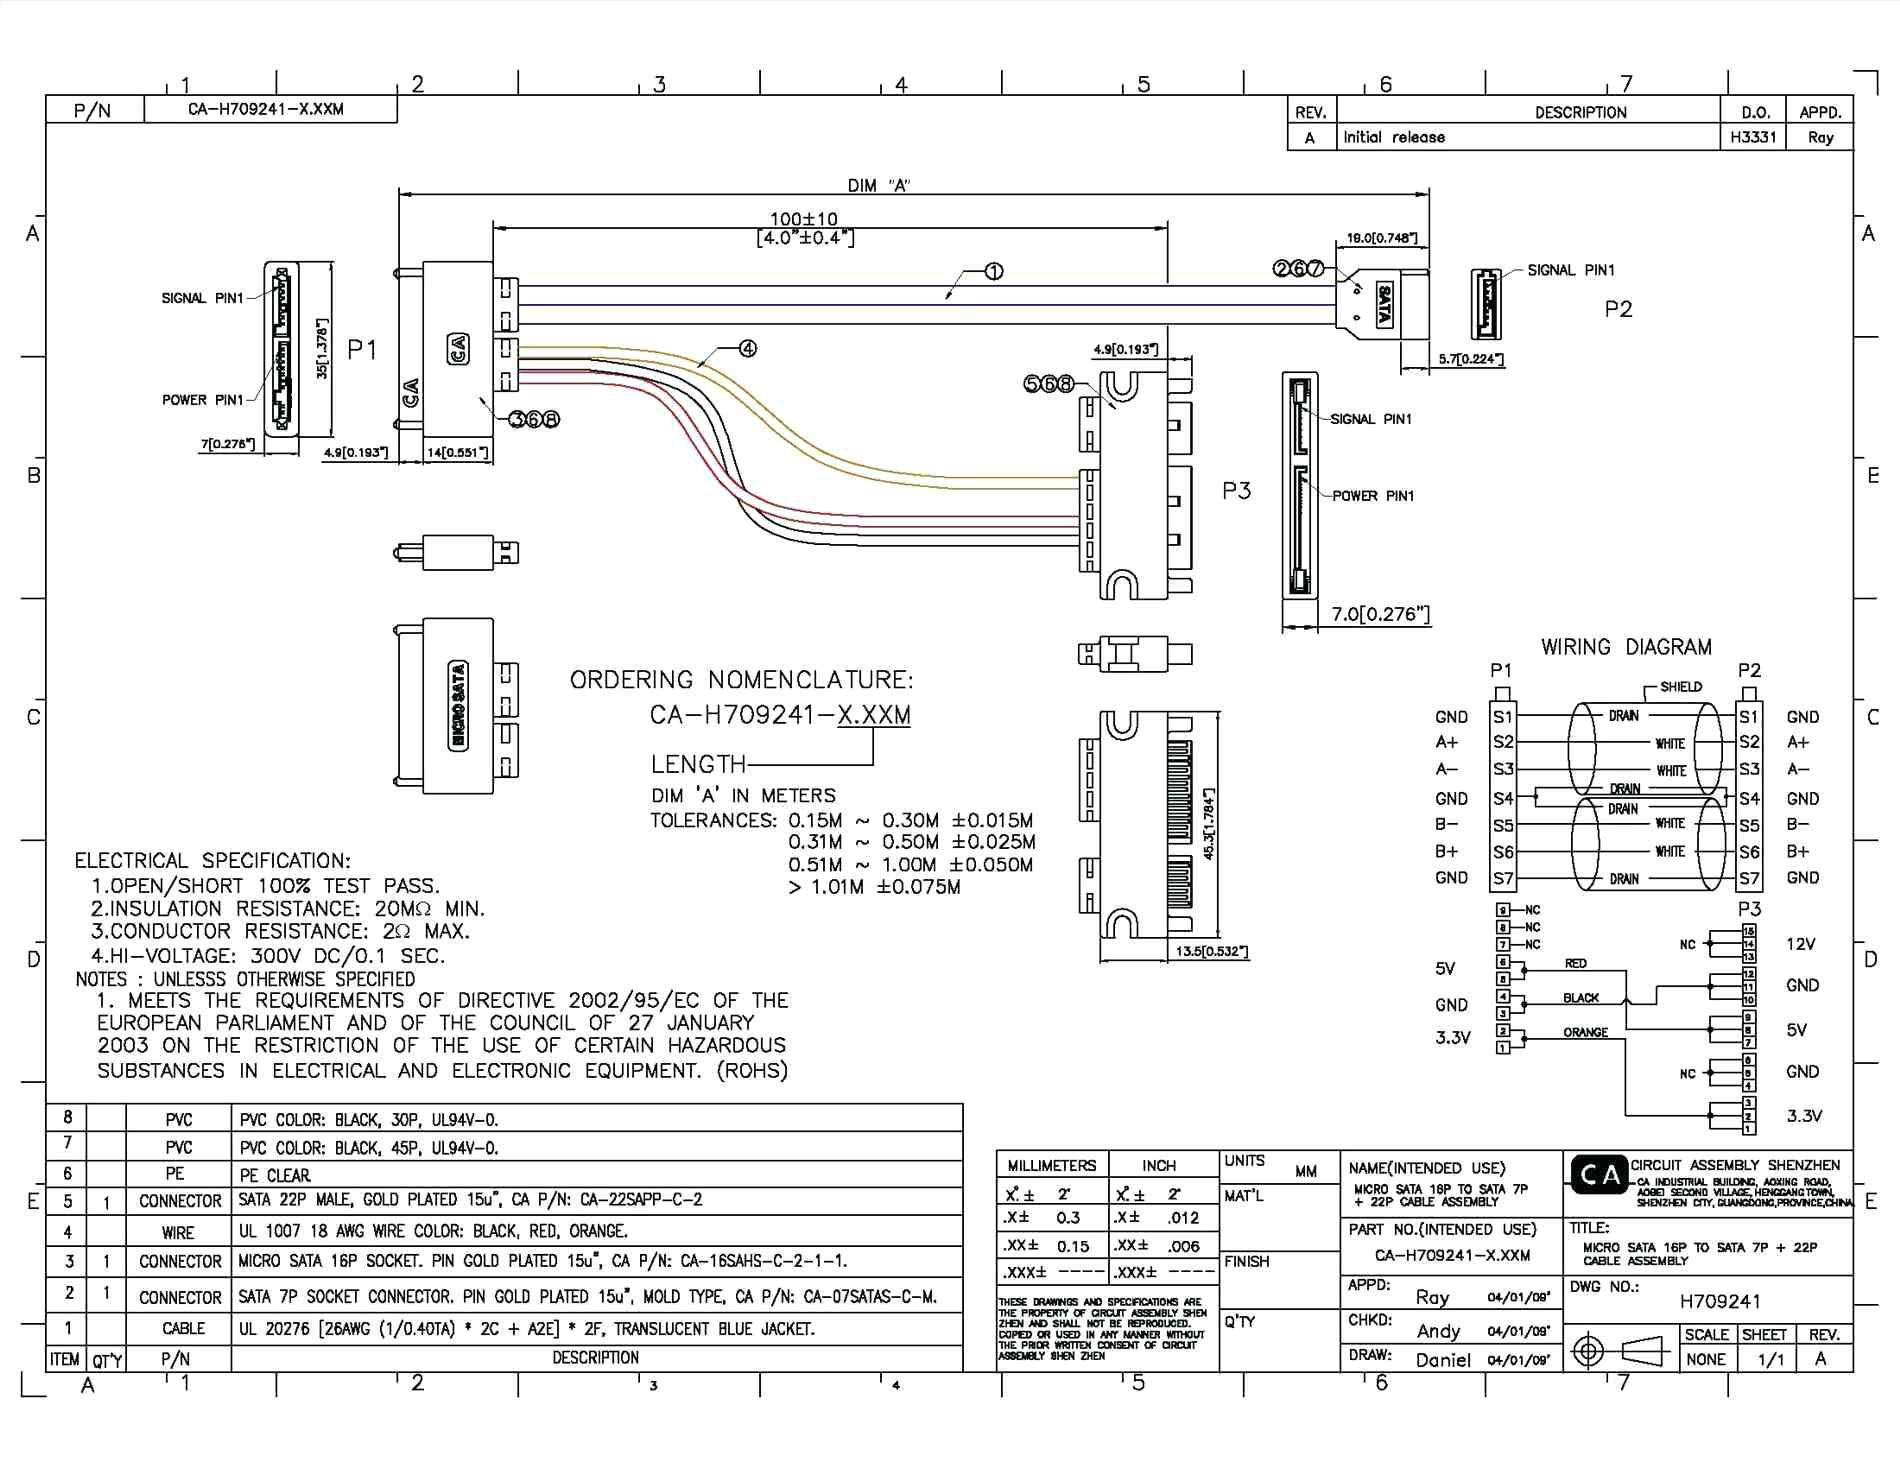 Usb Sata Adapter Wiring Diagram on data cable wiring diagram, displayport to dvi wiring diagram, dvi cable wiring diagram, network cable wiring diagram, cat5 cable wiring diagram, parallel cable wiring diagram,